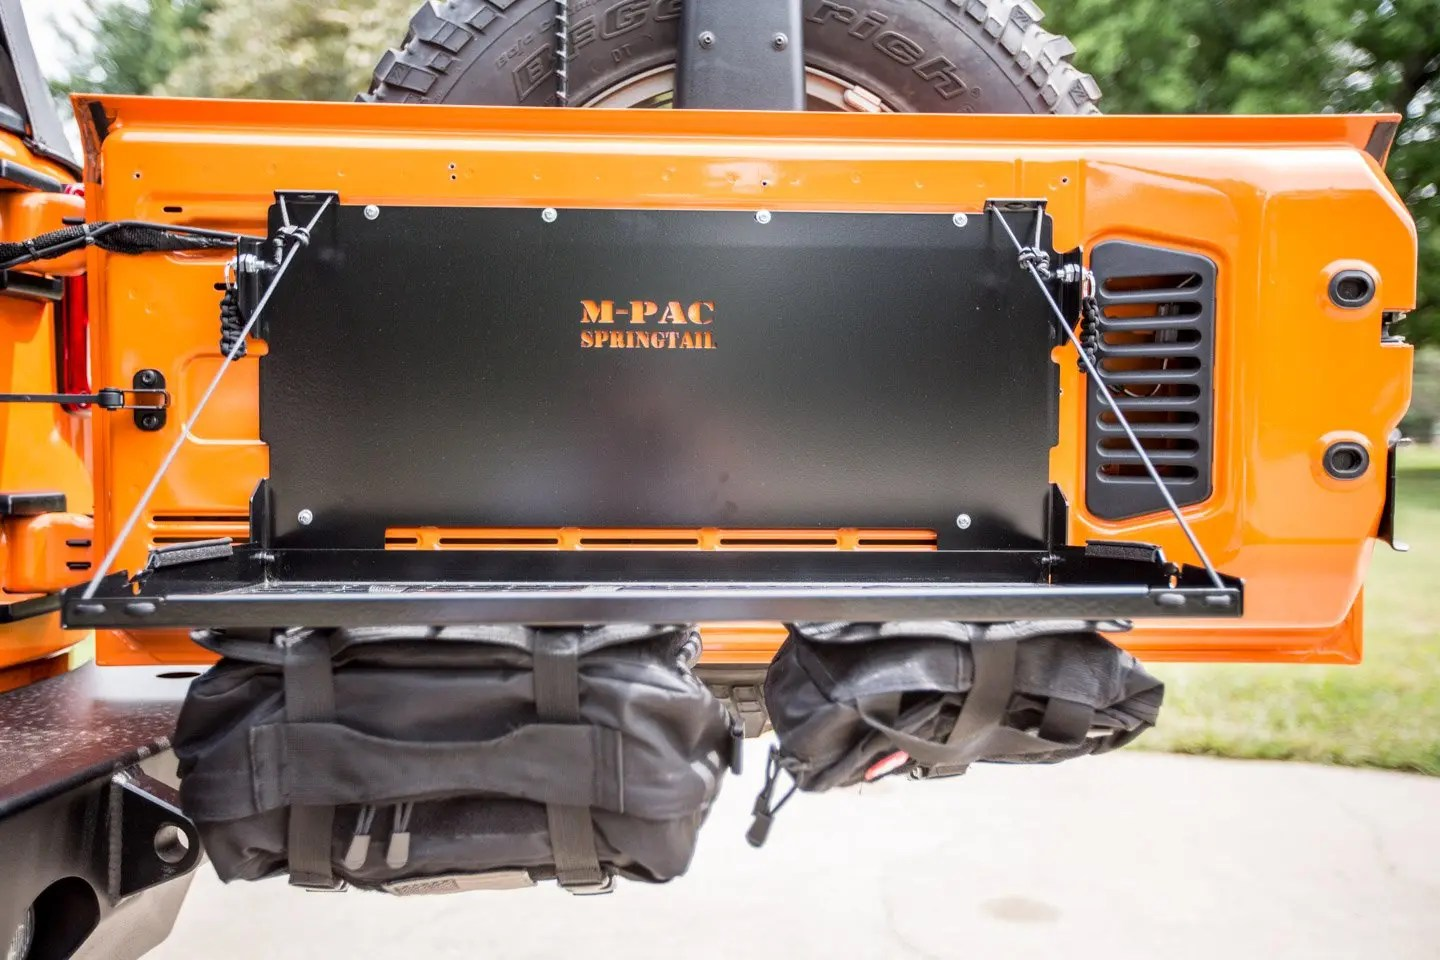 Springtail Mpac Jeep Rear Door Folding Tray